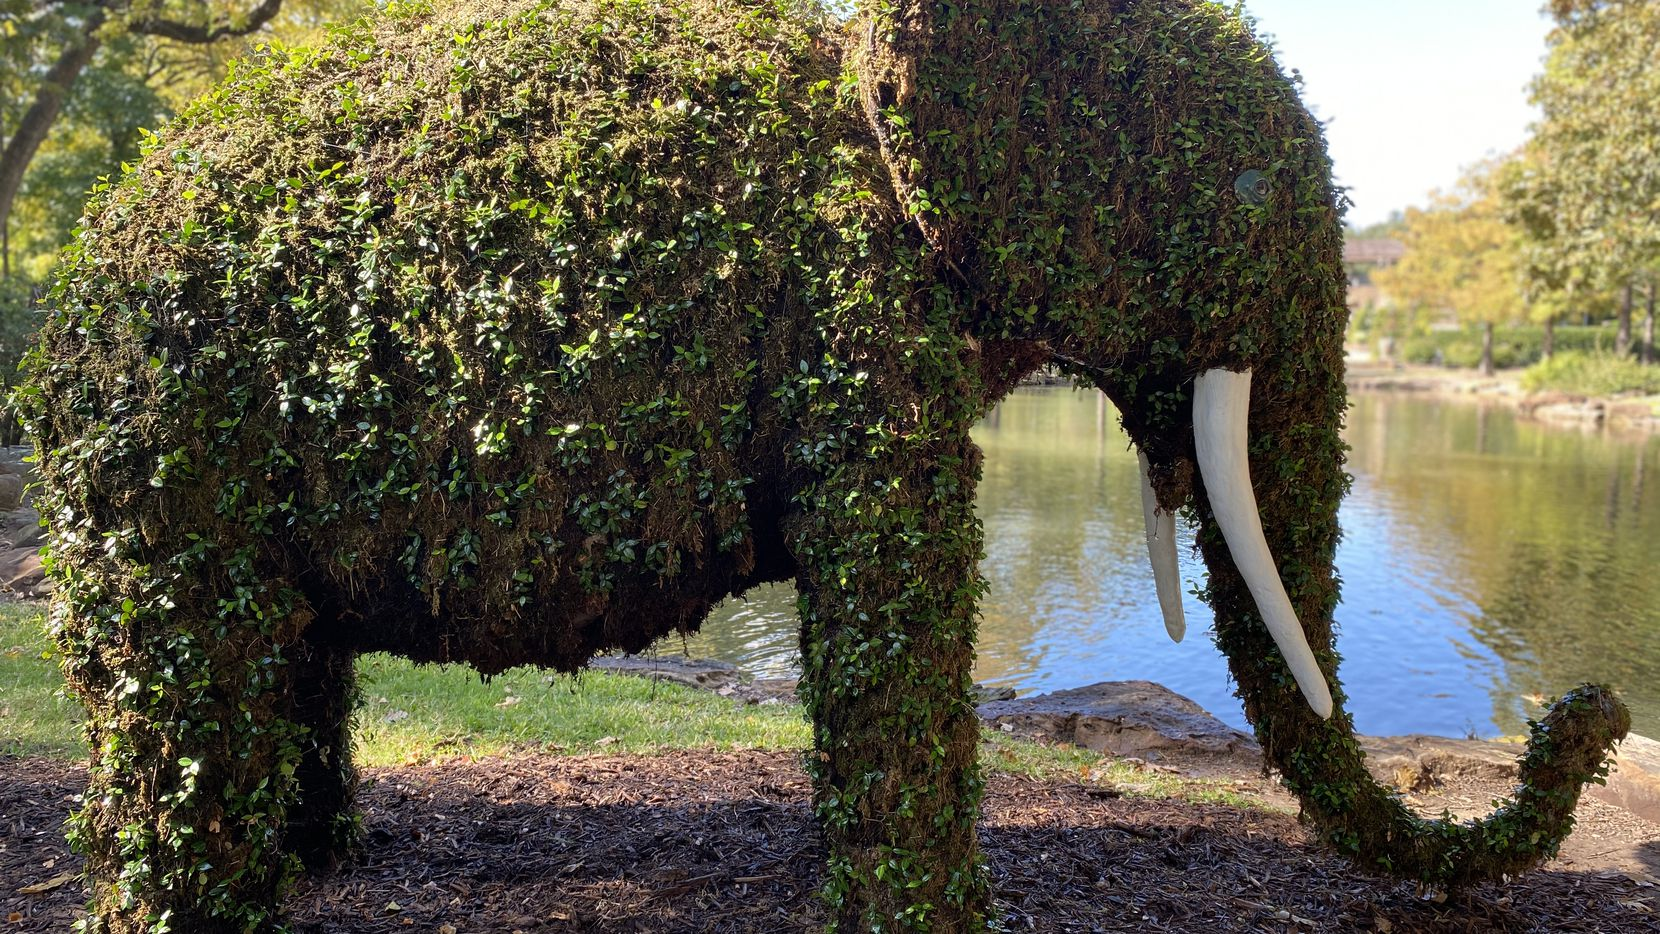 """Fort Worth Botanic Garden's """"Topiaries in the Garden"""" exhibit features 12 plant-based animal shapes, including elephants, giraffes and butterflies."""